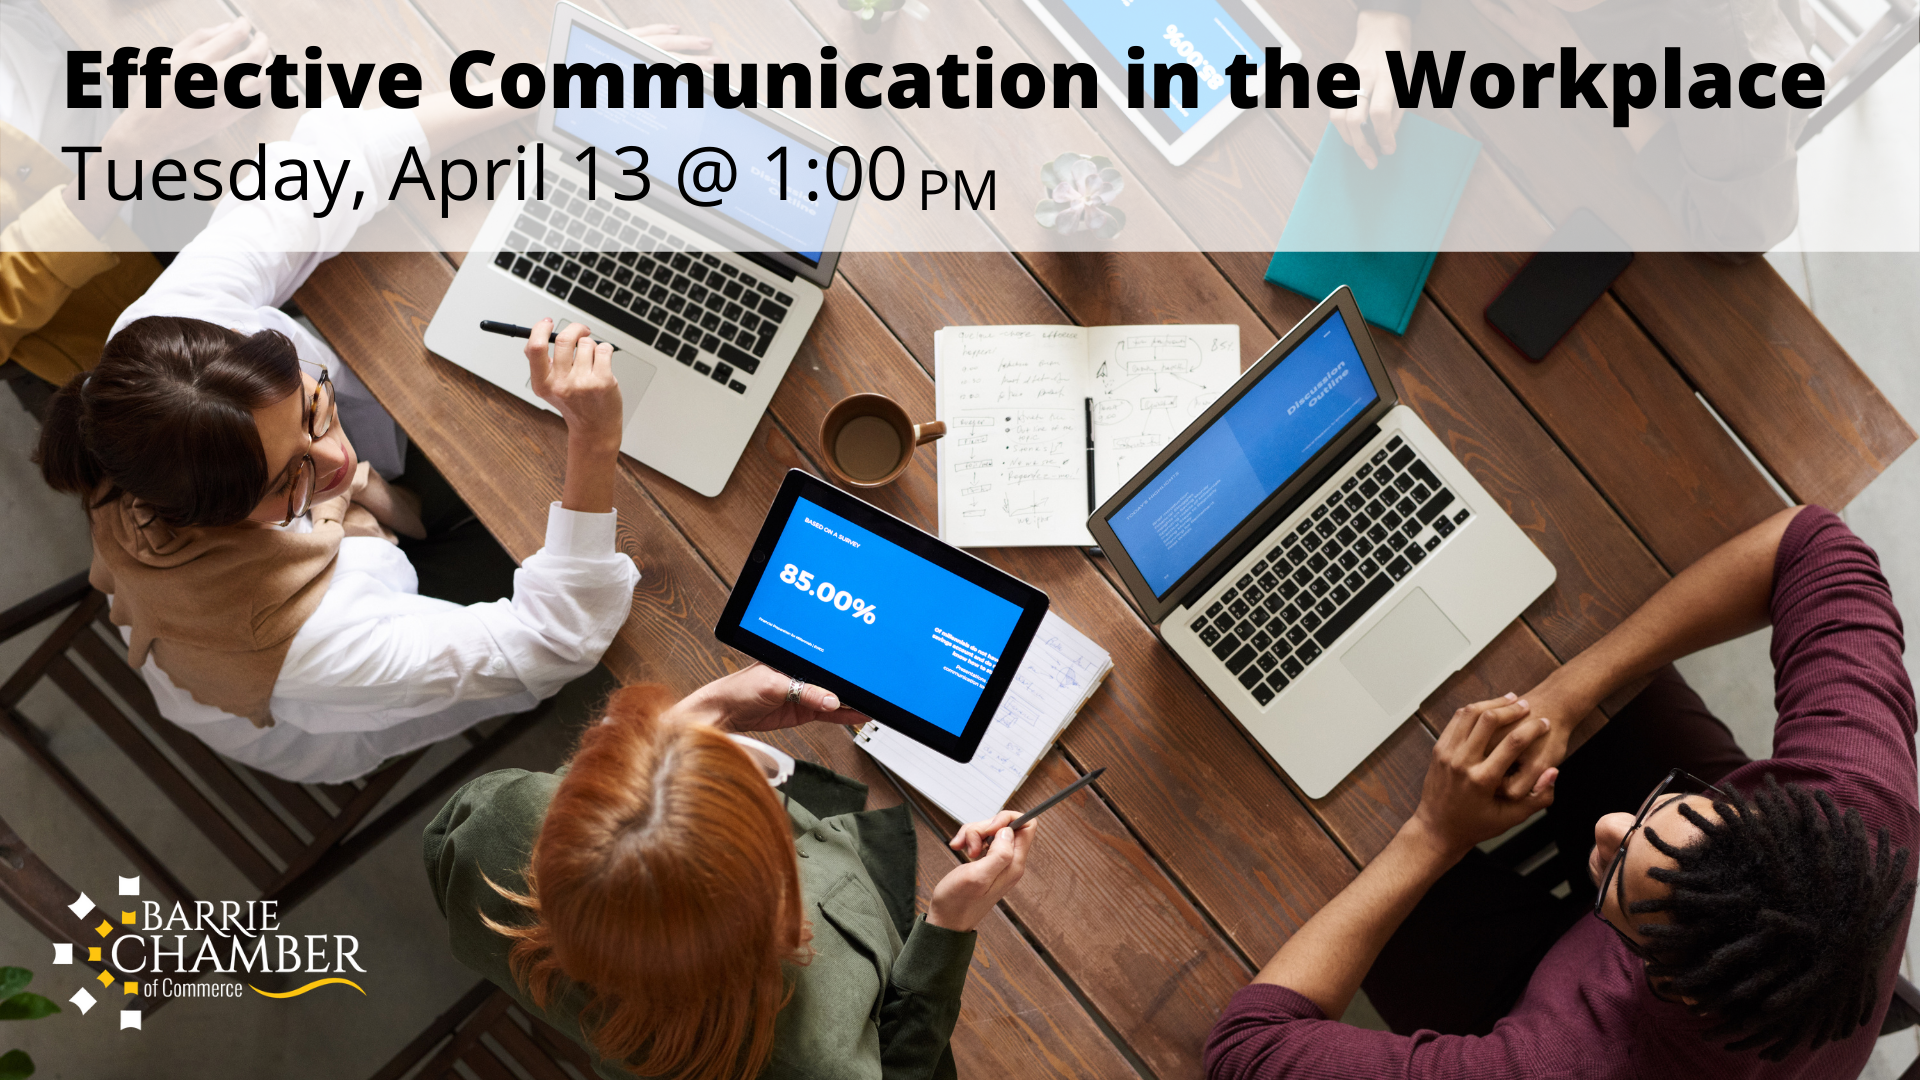 Effective Communication in the Workplace - April 13 @ 1 PM